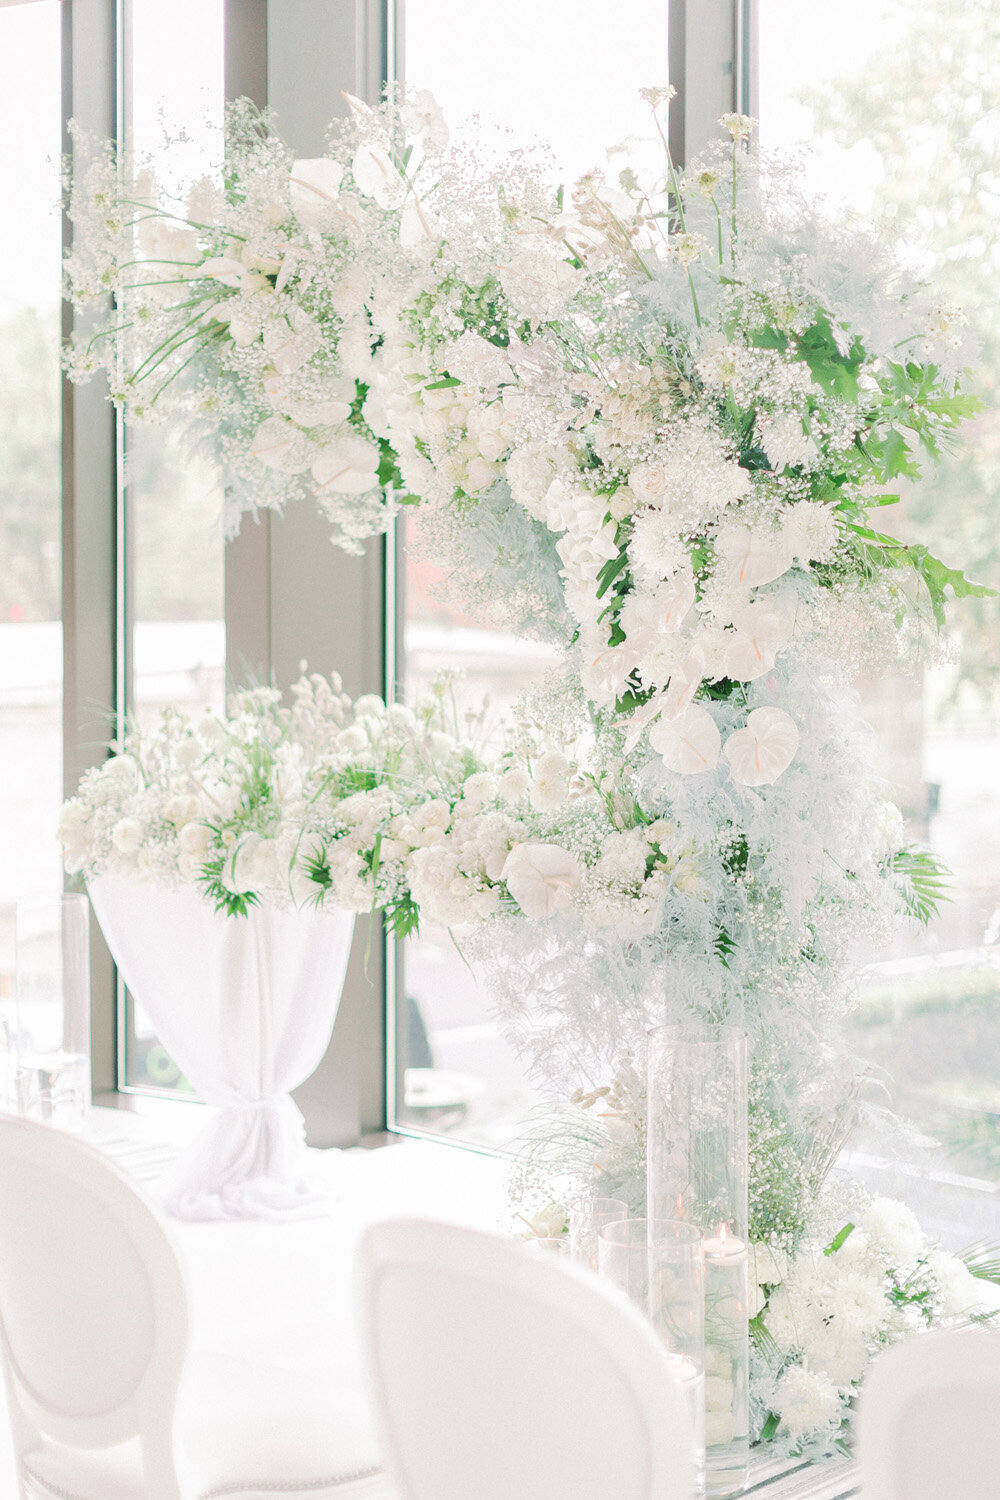 FourSeasonsParkLane-LondonWeddingPlanner17